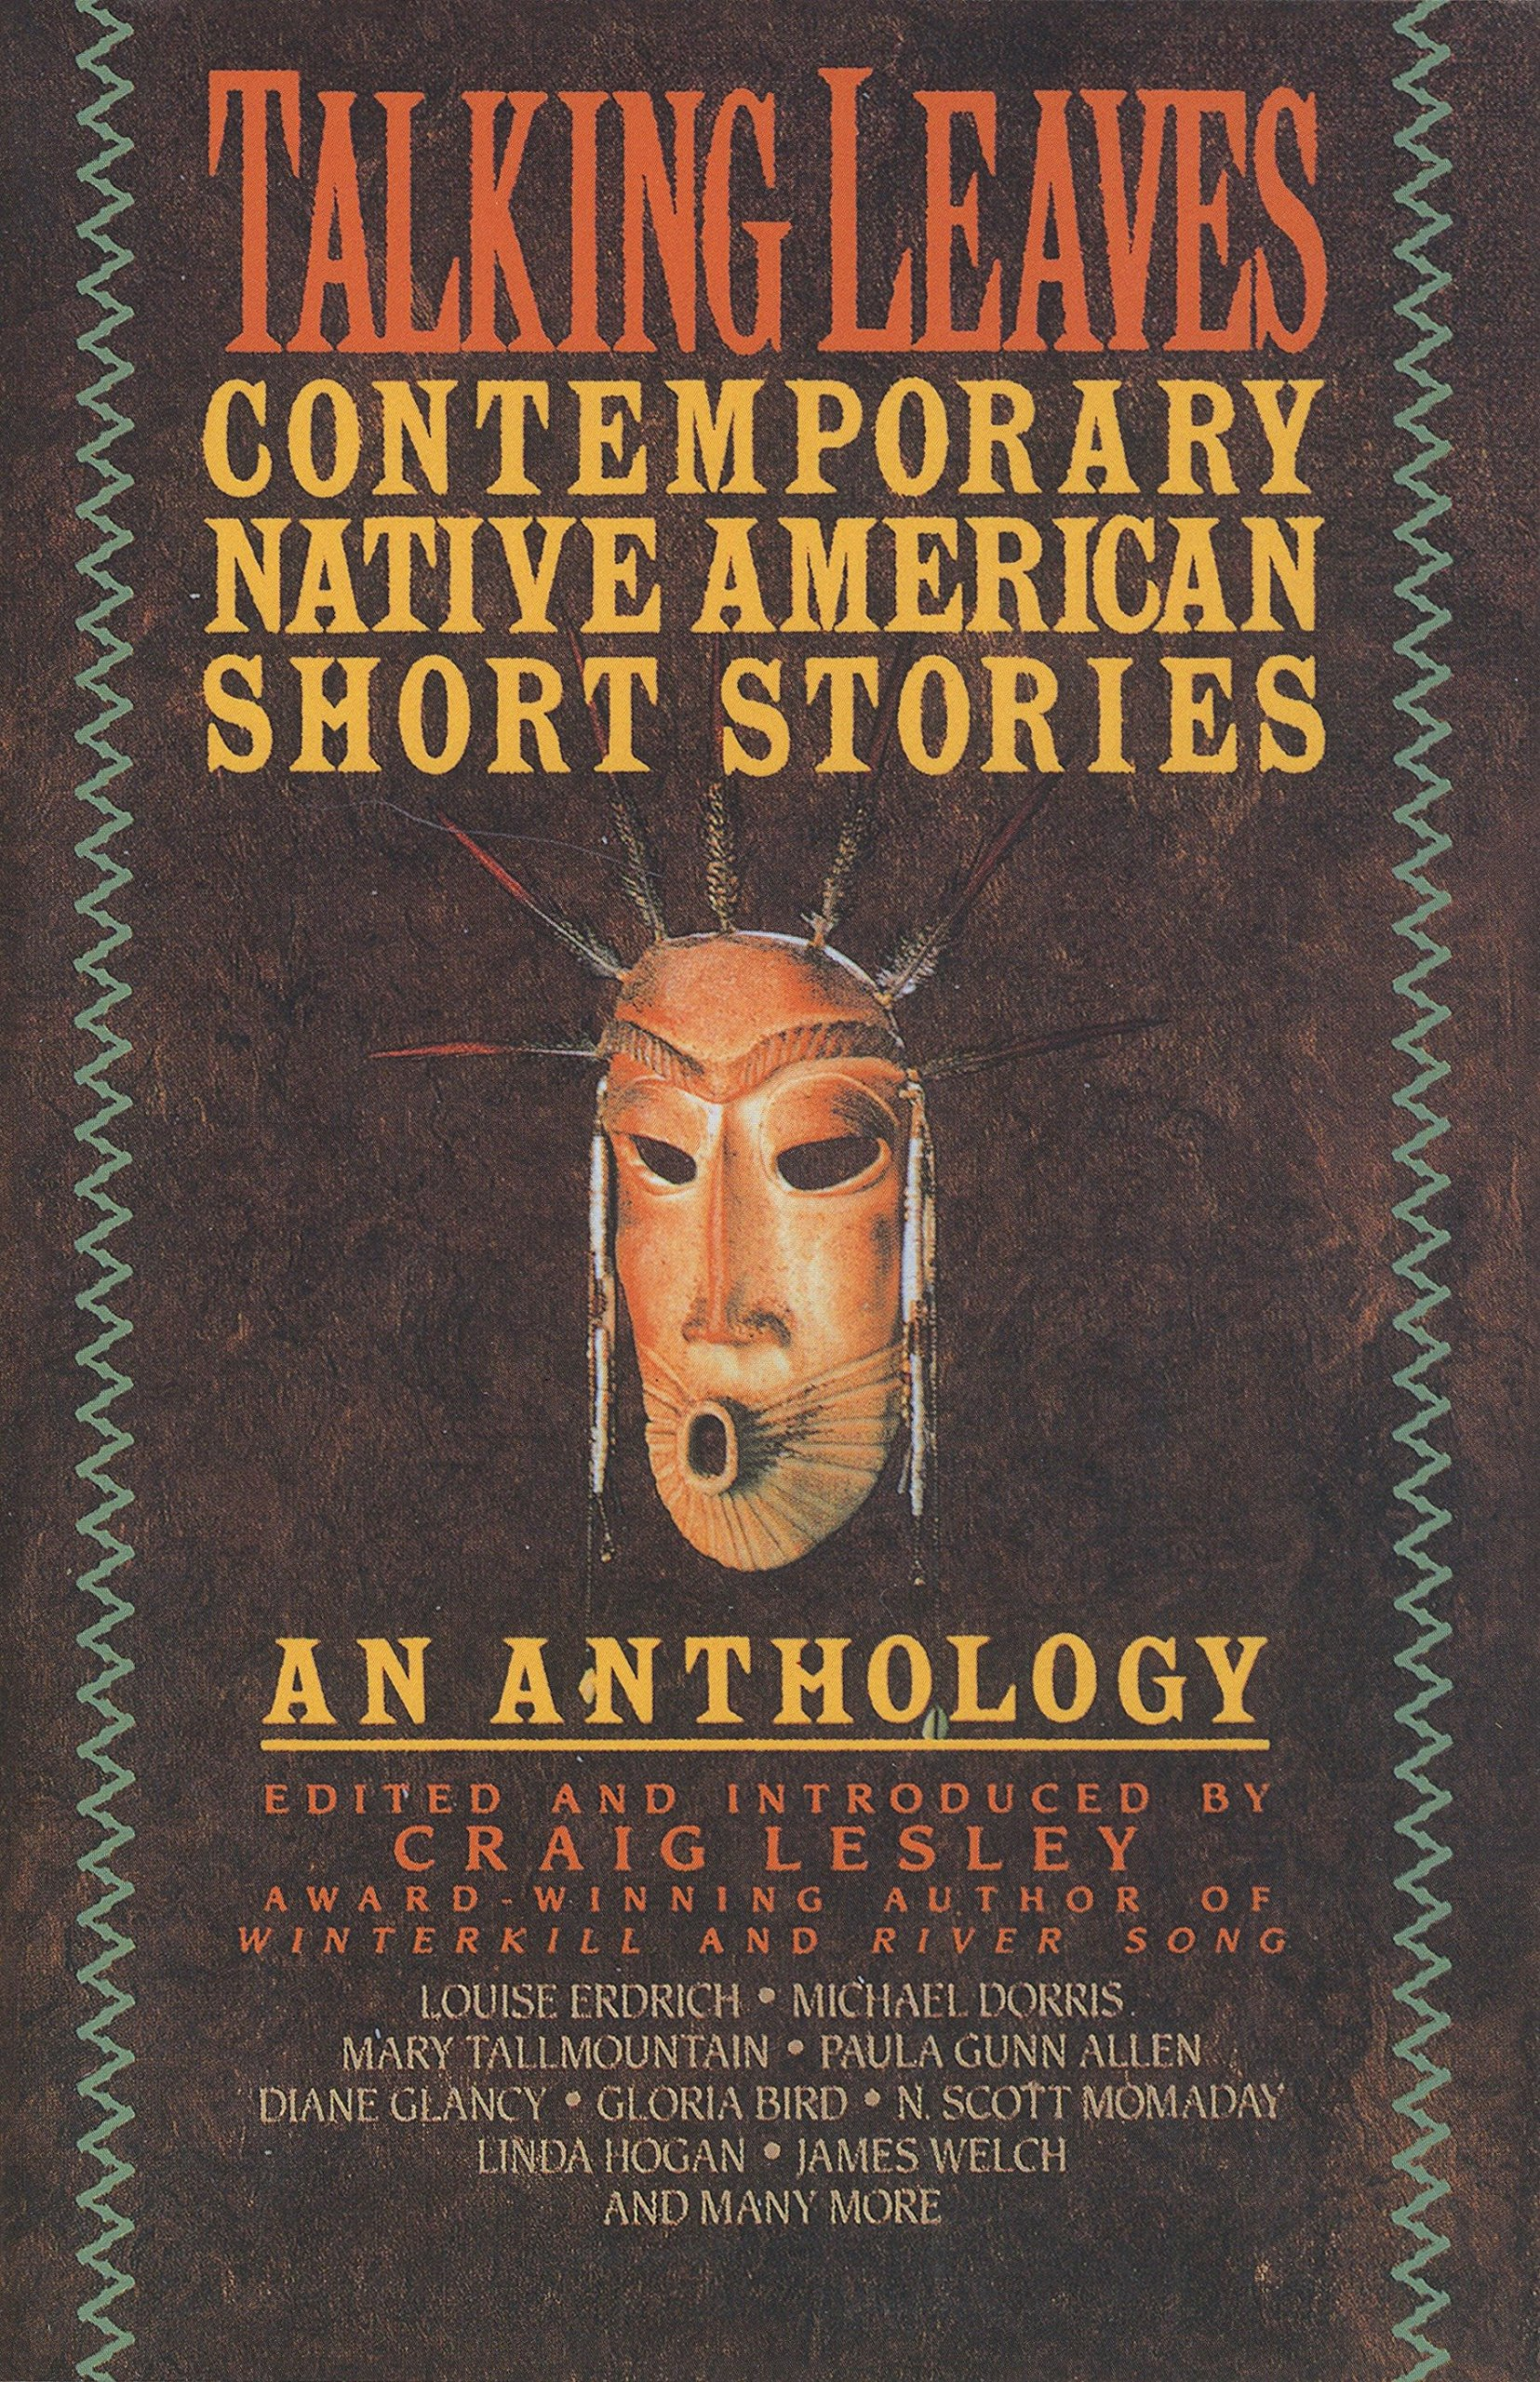 Download Talking Leaves: Contemporary Native American Short Stories PDF